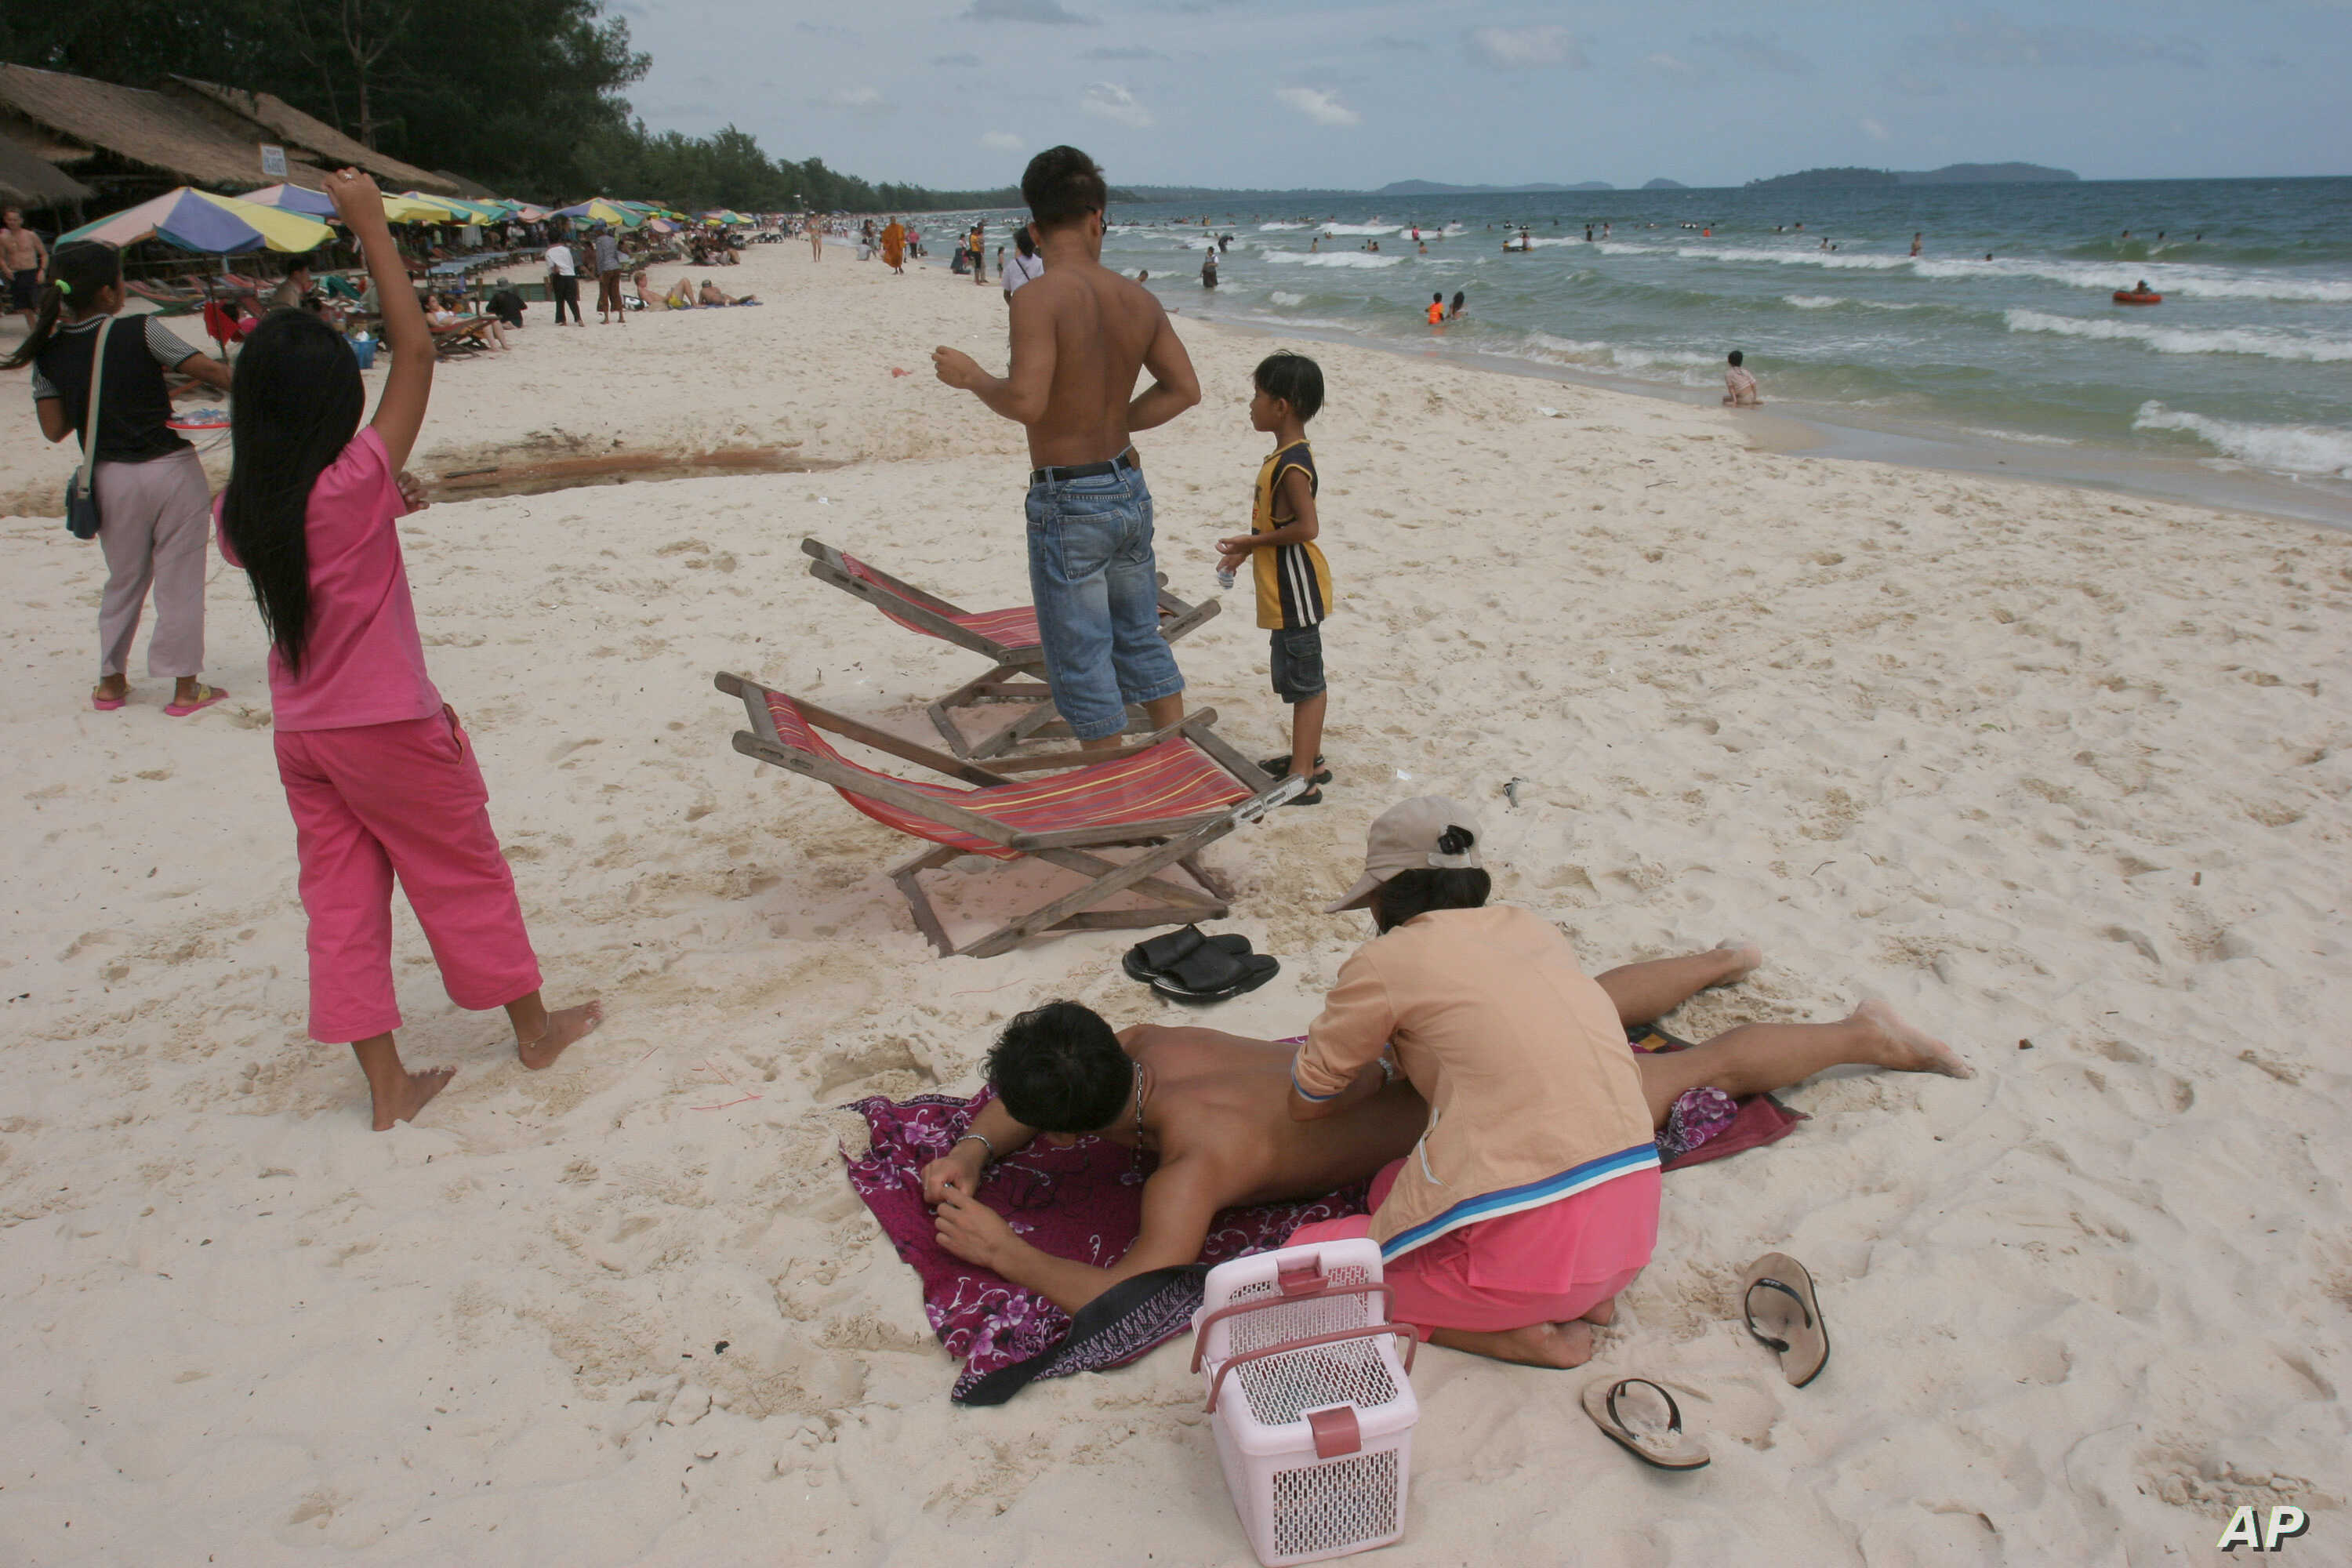 A Cambodian woman gives massage to a tourist on the beach of Sihanoukville, some 185 kilometers (115 miles)  southwest of Phnom Penh, Cambodia July 29, 2006. Cambodia's government has given its permission for six local and foreign companies to…